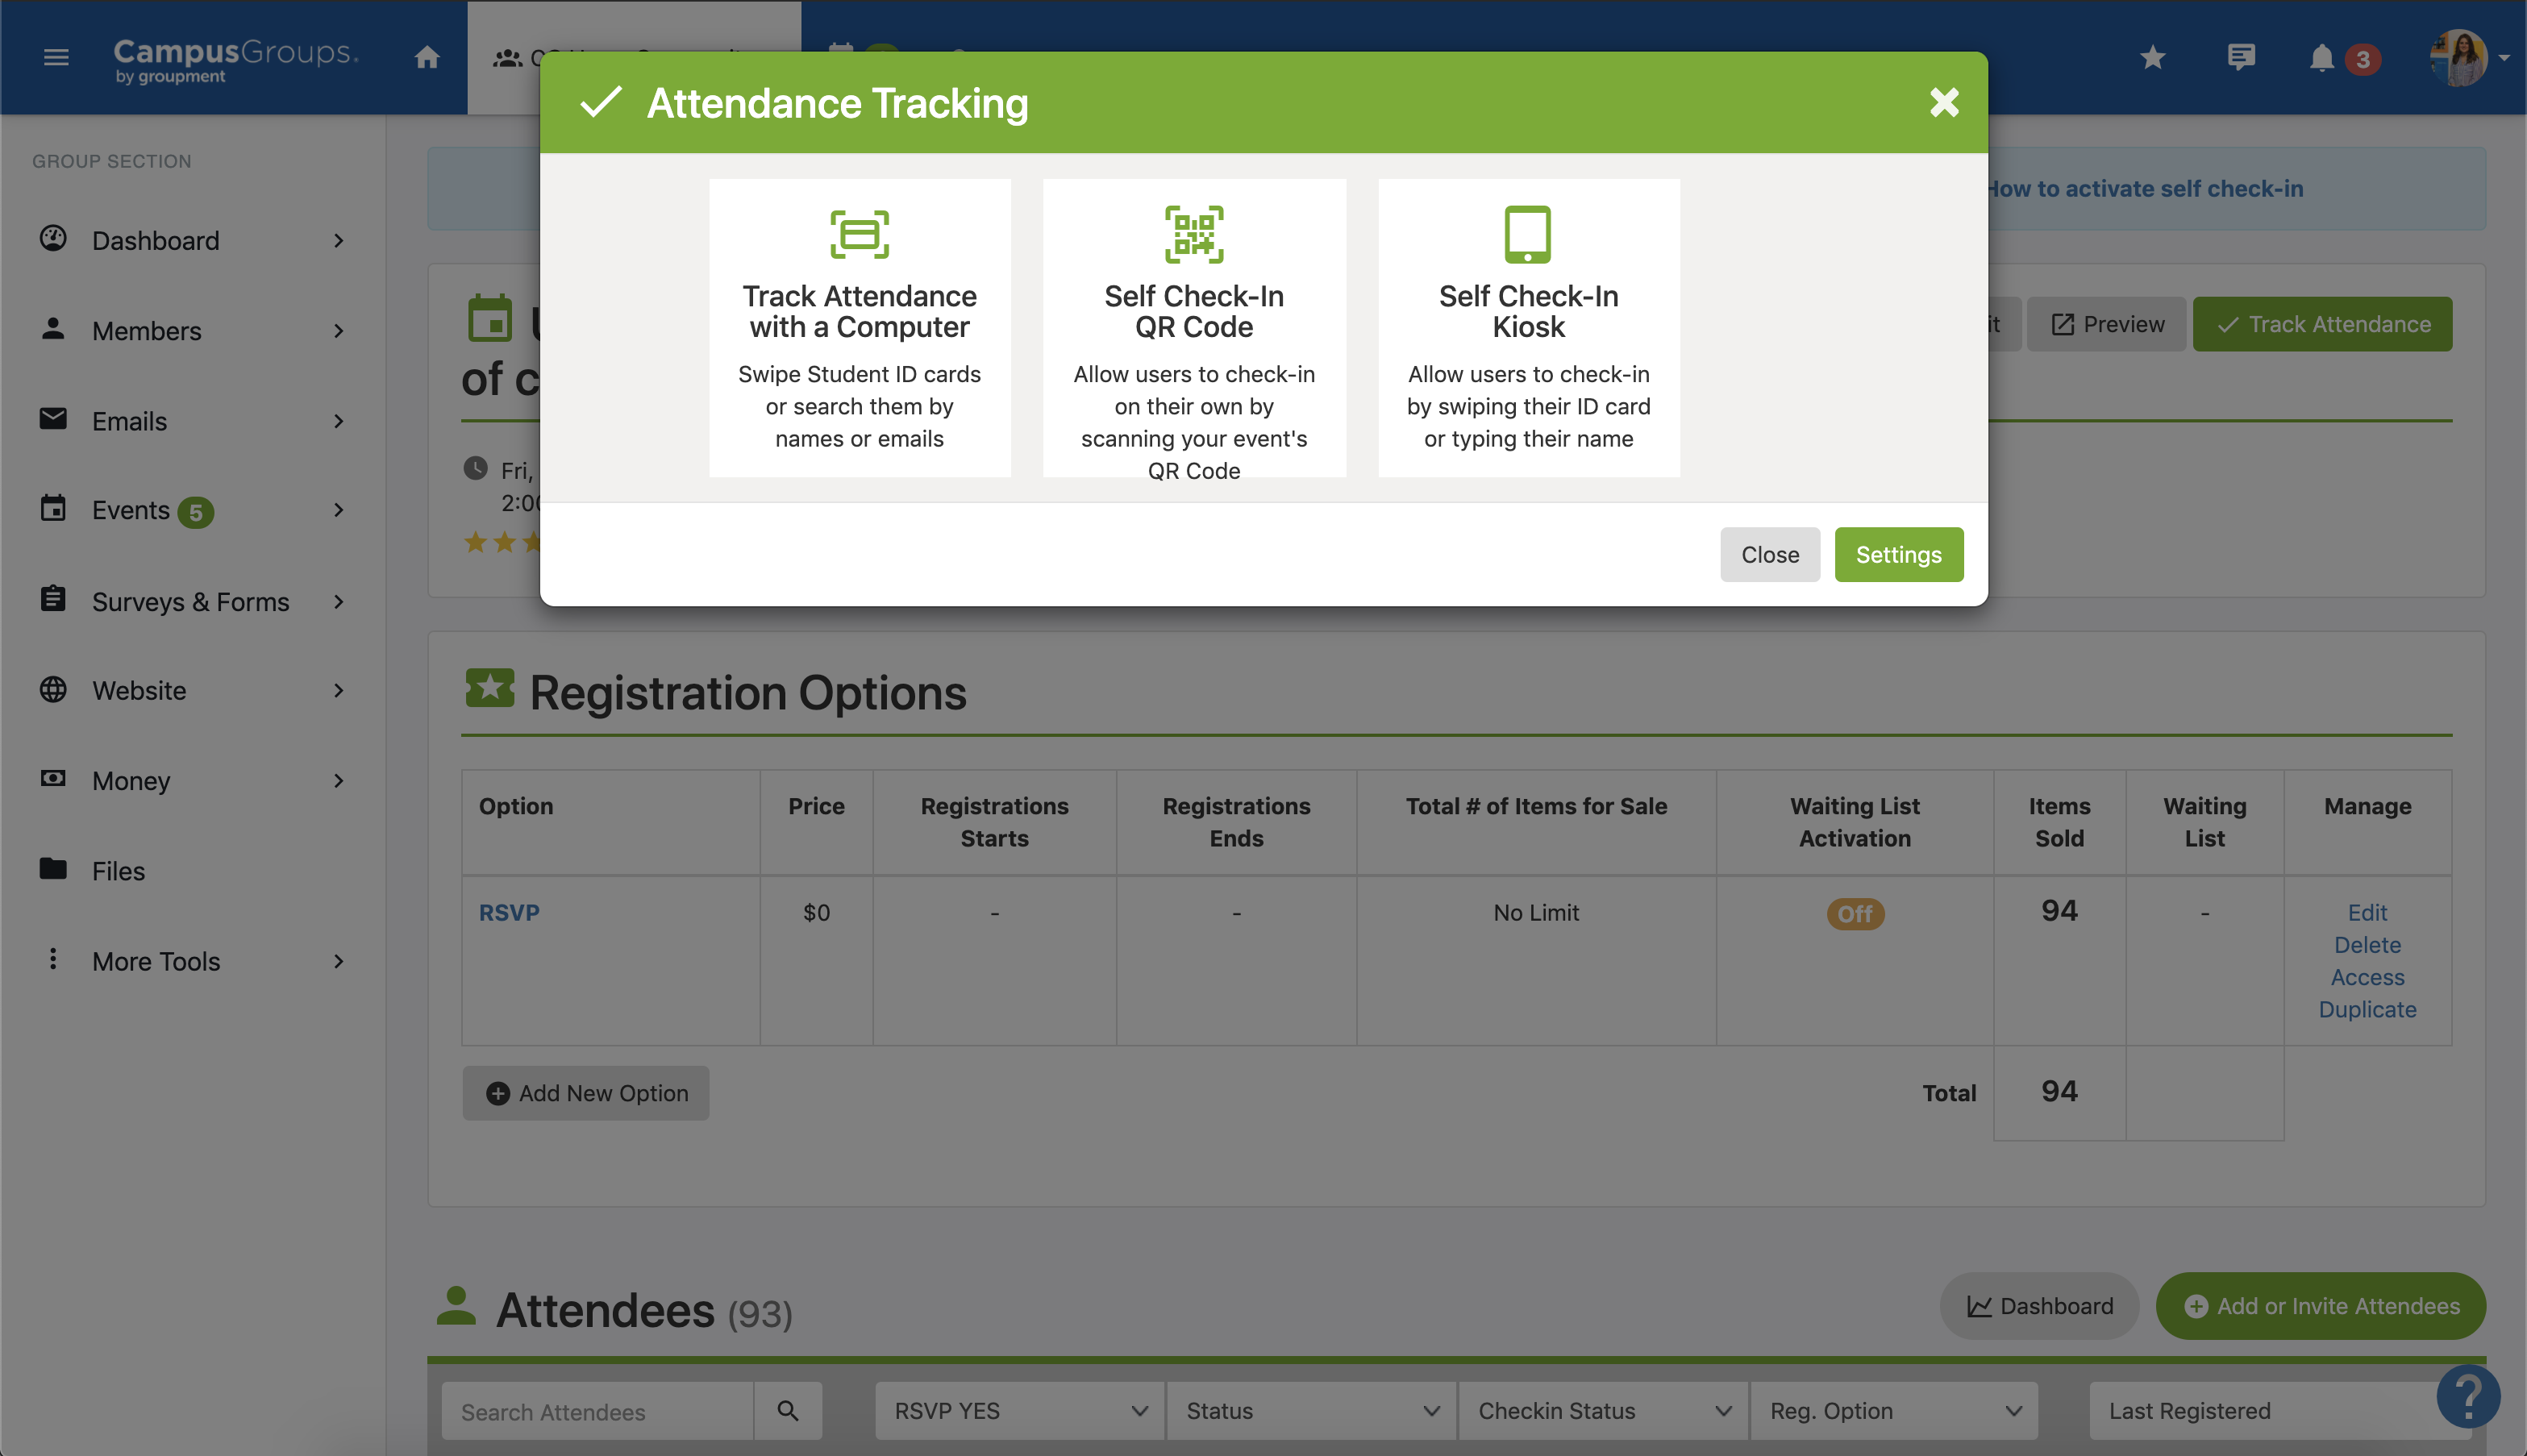 Attendance tracking options